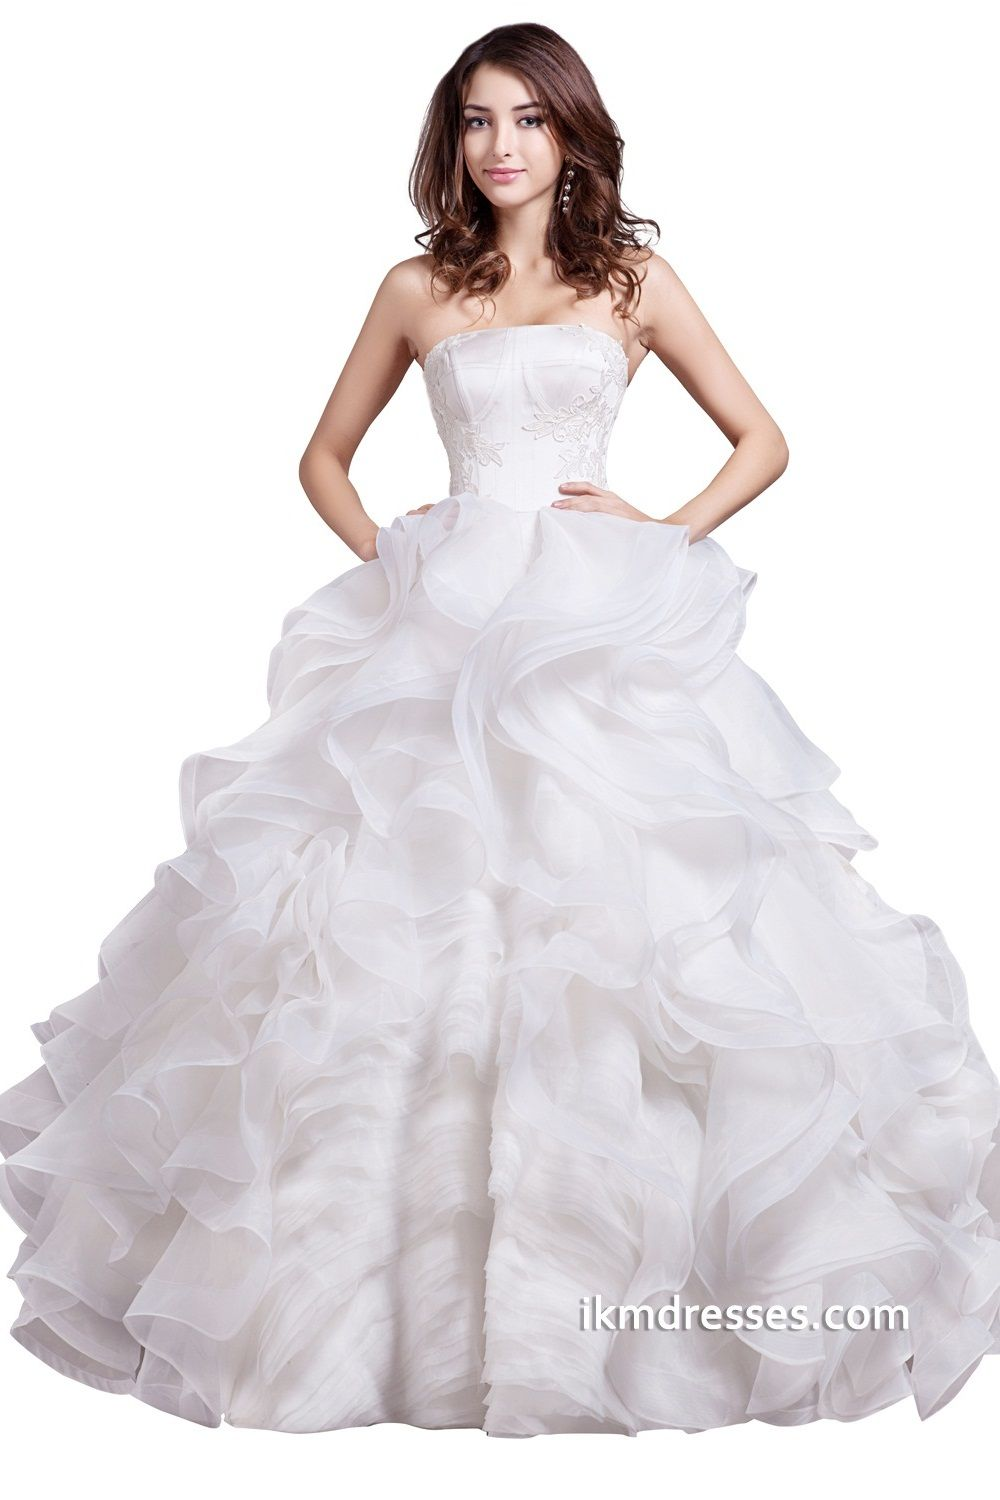 Strapless tiers ruffles bridal ball gowns wedding dresses